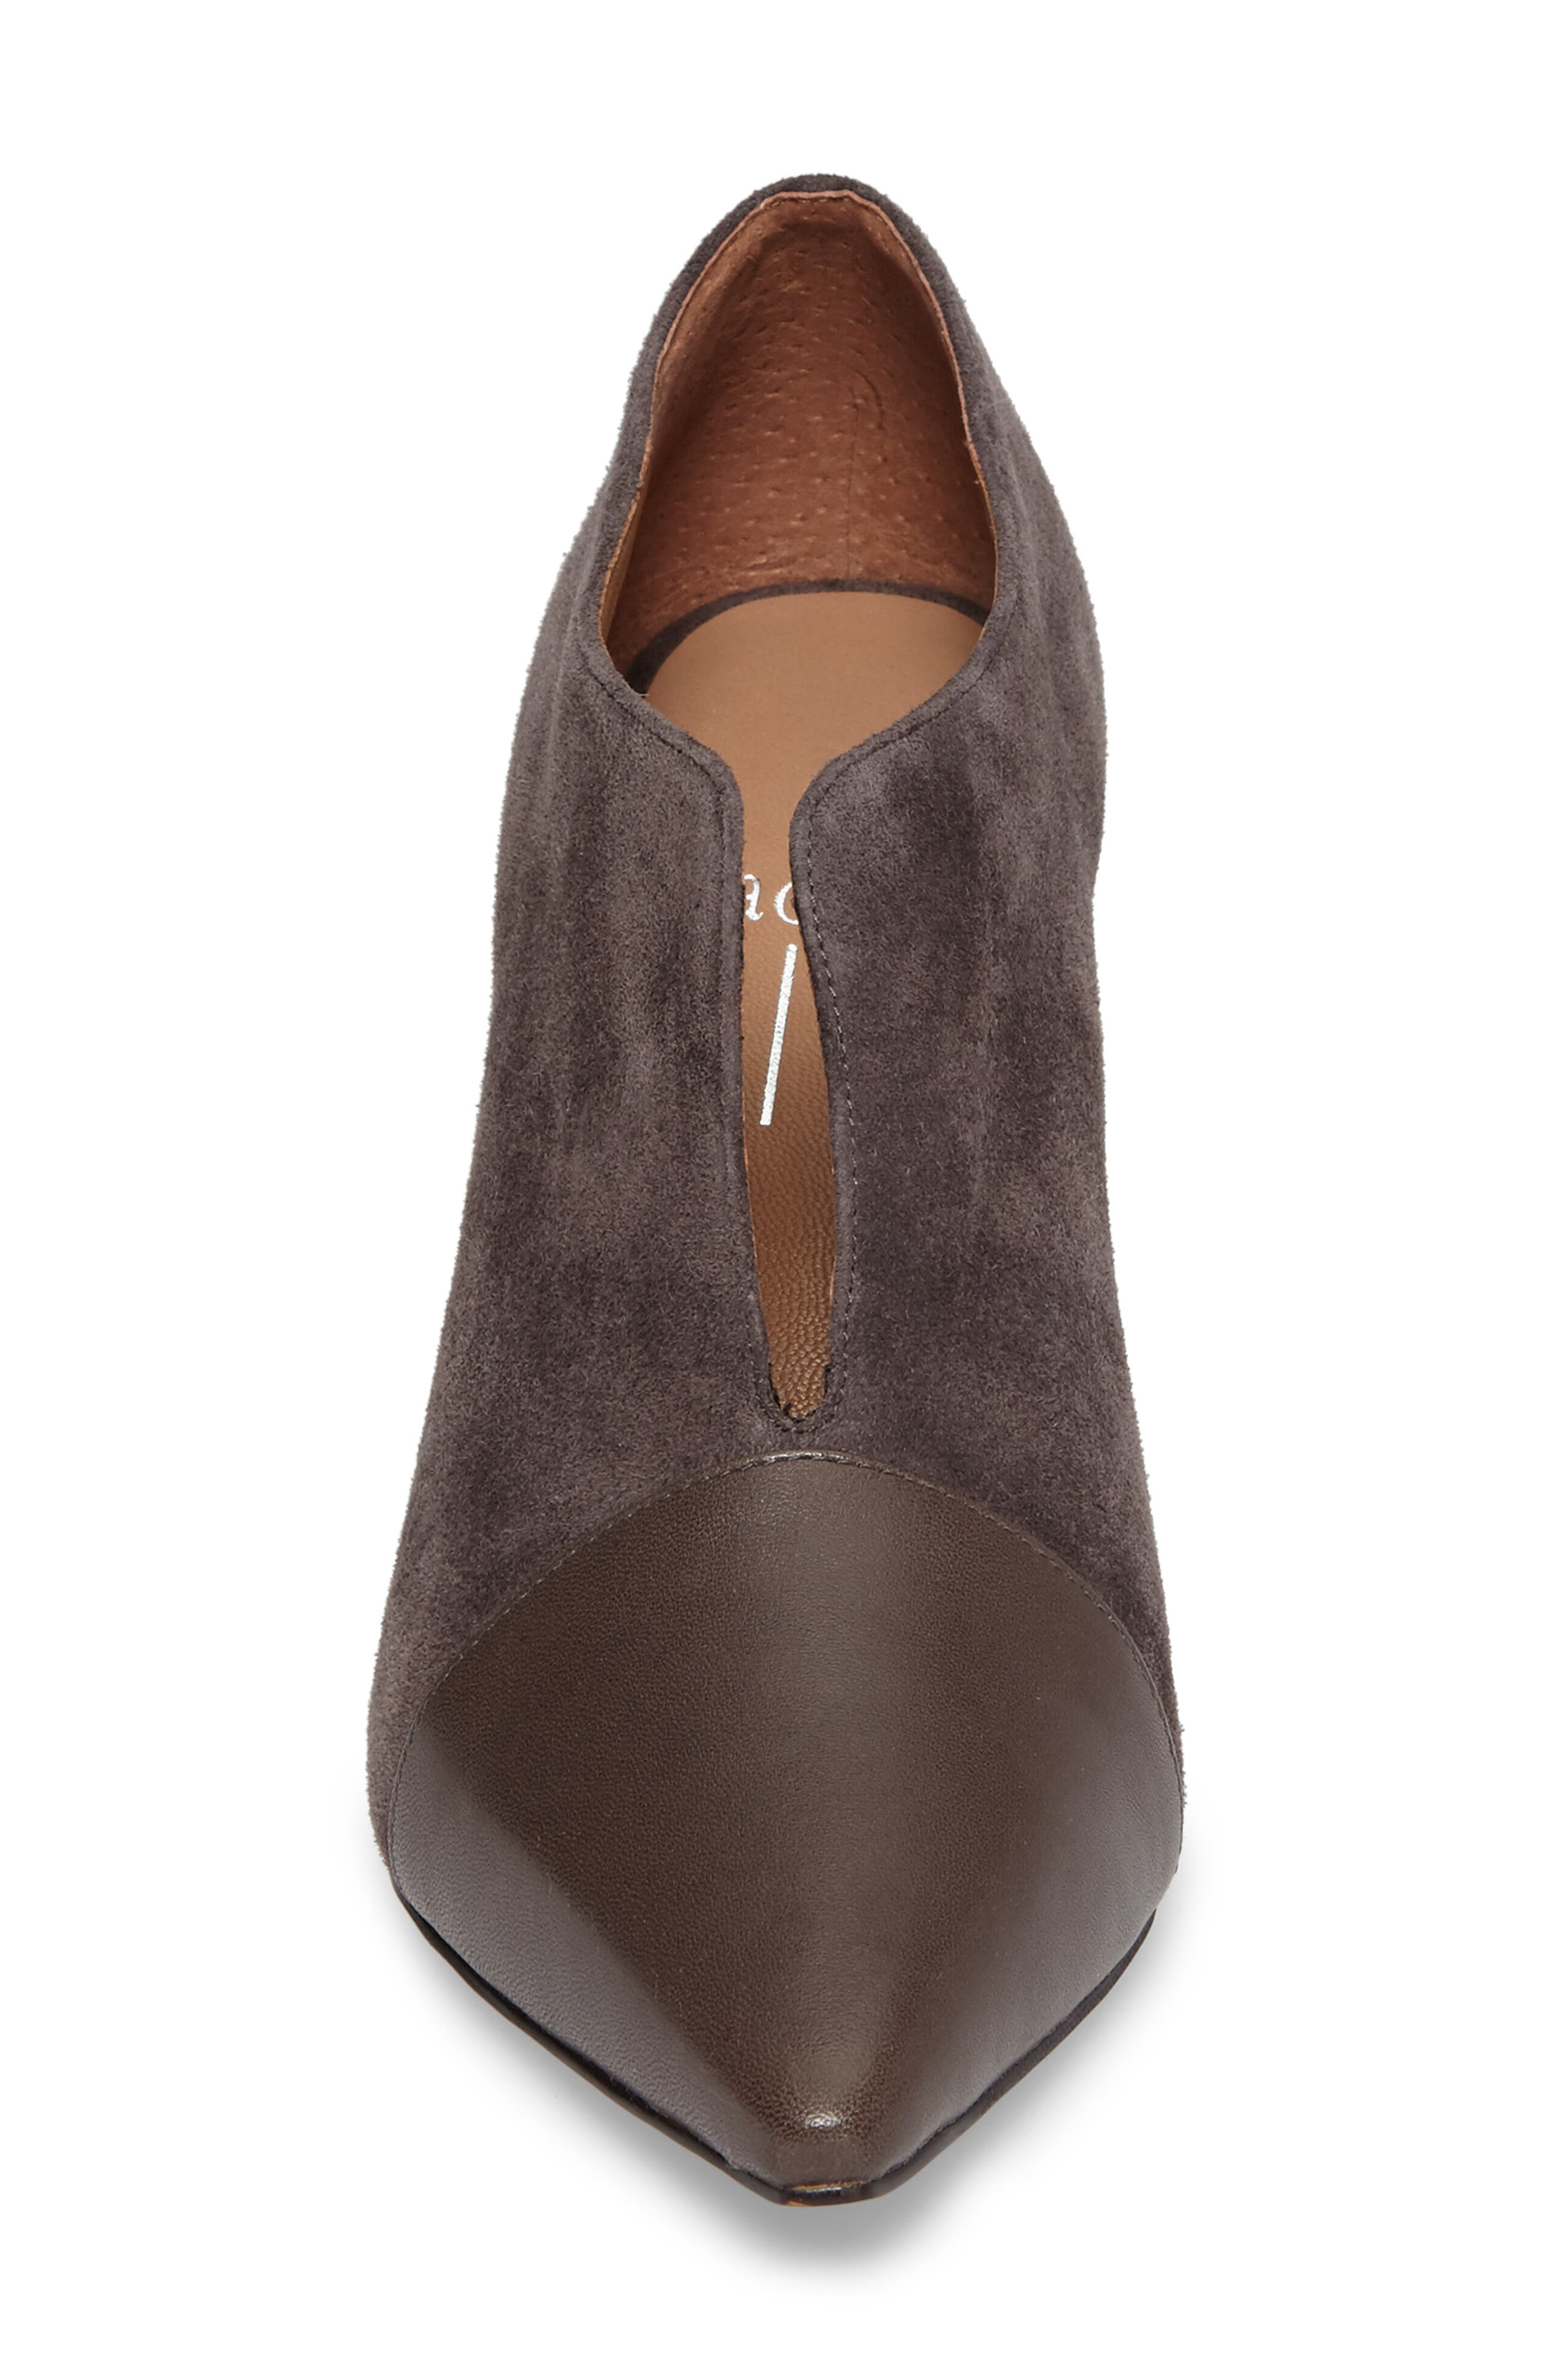 Pointy Toe Bootie,                             Alternate thumbnail 4, color,                             Ash Suede